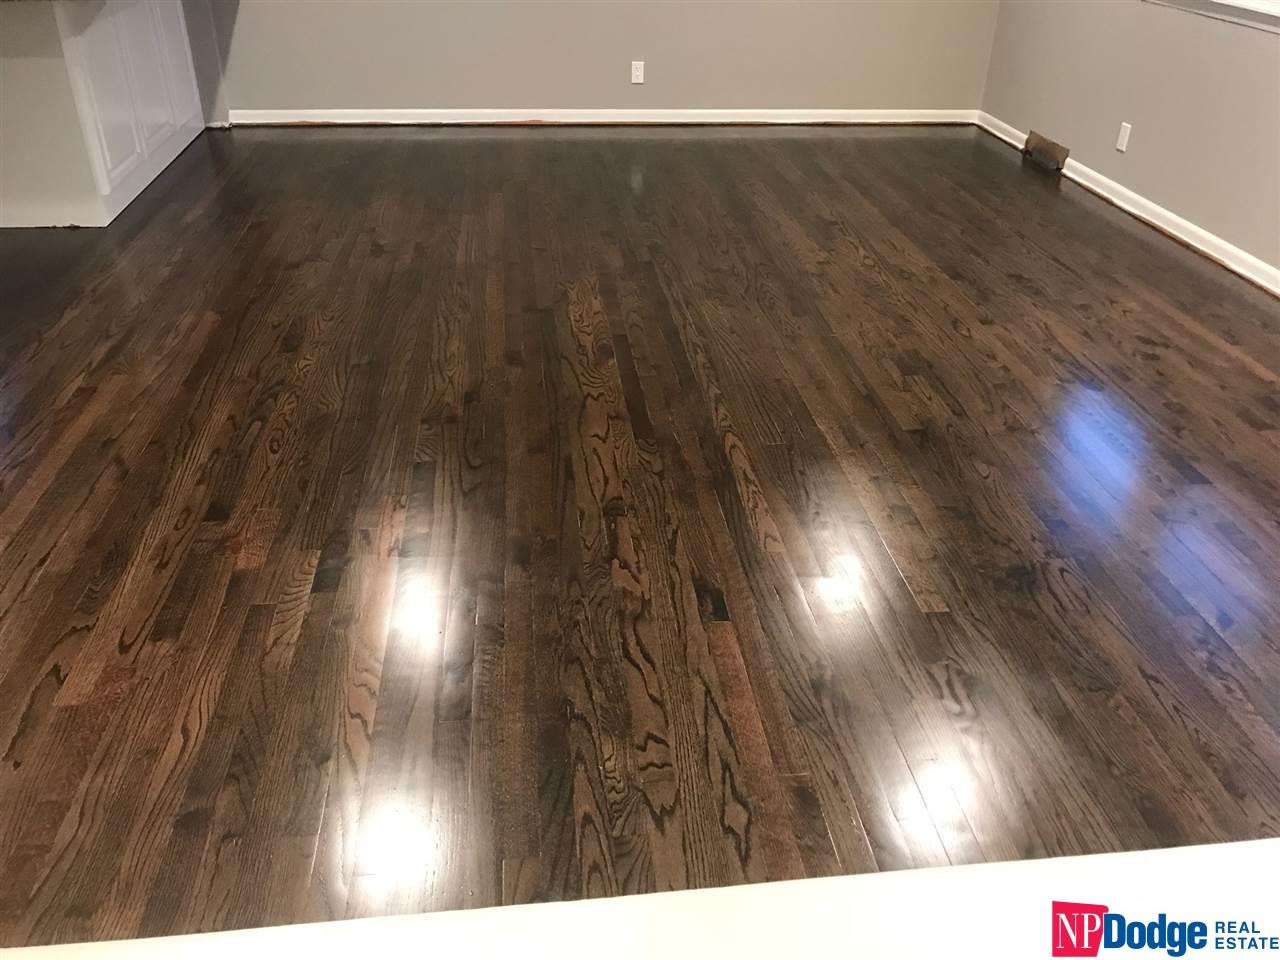 Hardwood Floor Refinishing Iowa City Of 5672 S 122 Street Omaha 68137 Berkshire Hathaway Home Services Regarding 5672 S 122 Street Omaha Ne 68137